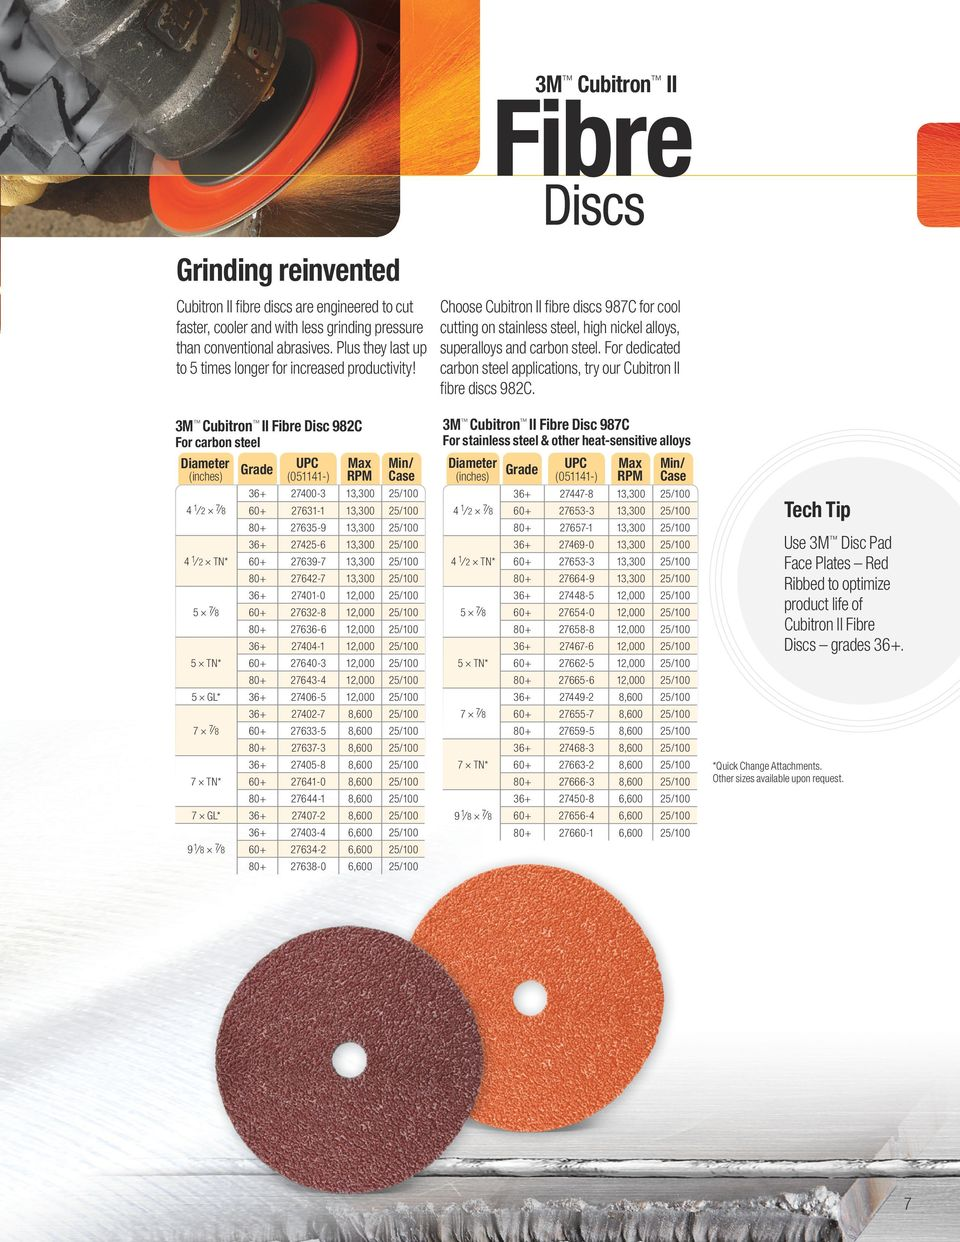 For dedicated carbon steel applications, try our Cubitron II fibre discs 982C.